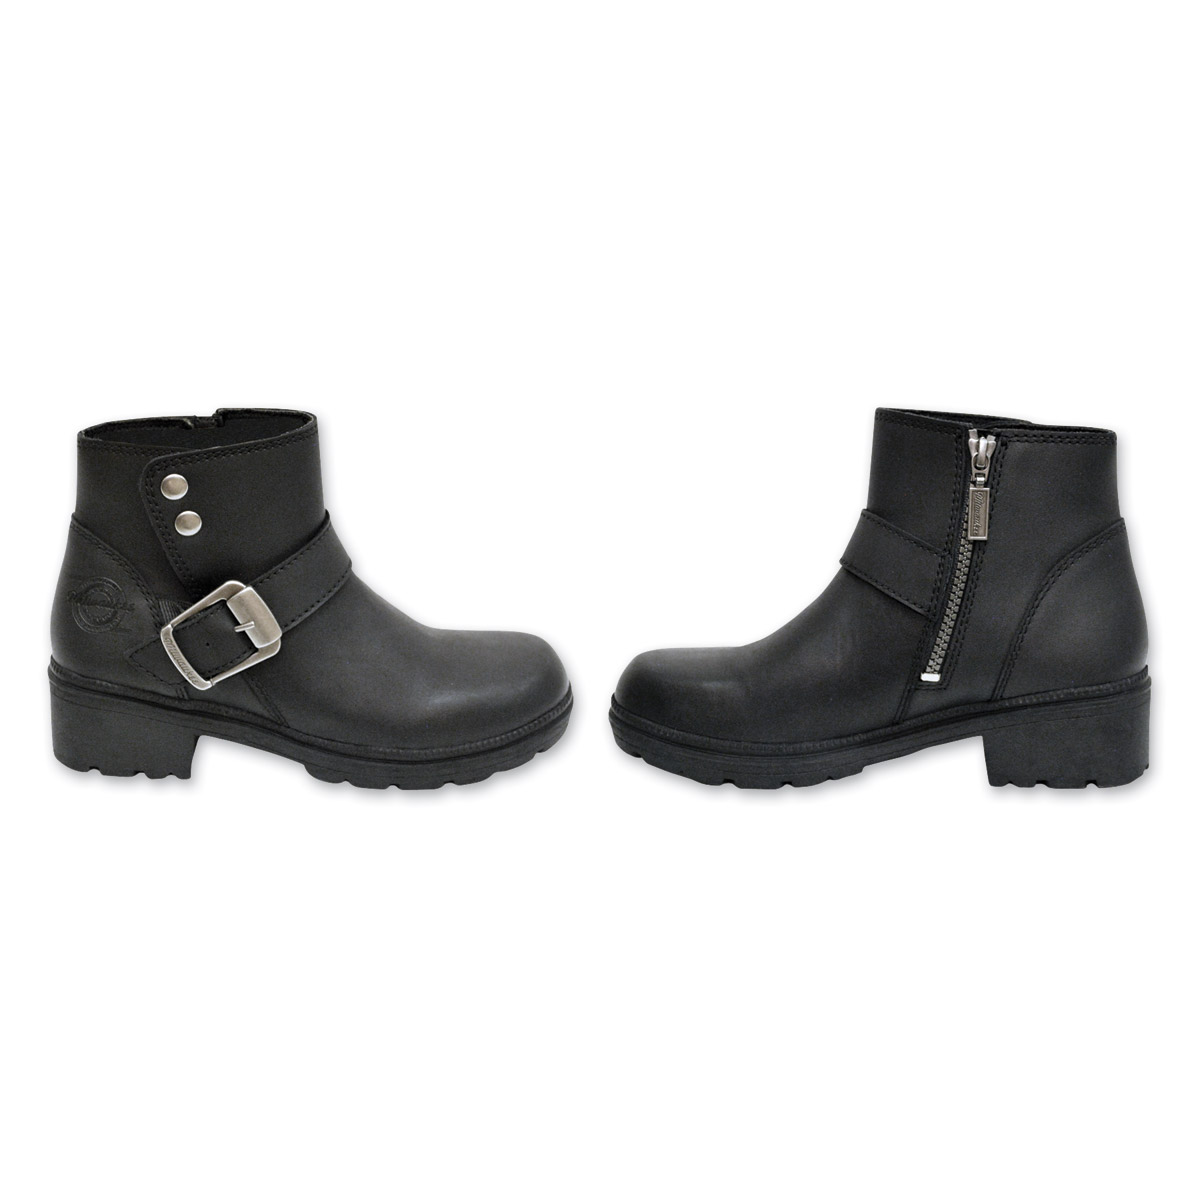 Capri Leather Boot discount low cost cheap sale clearance discount best sale 2014 unisex cheap pay with paypal oroOMHHy